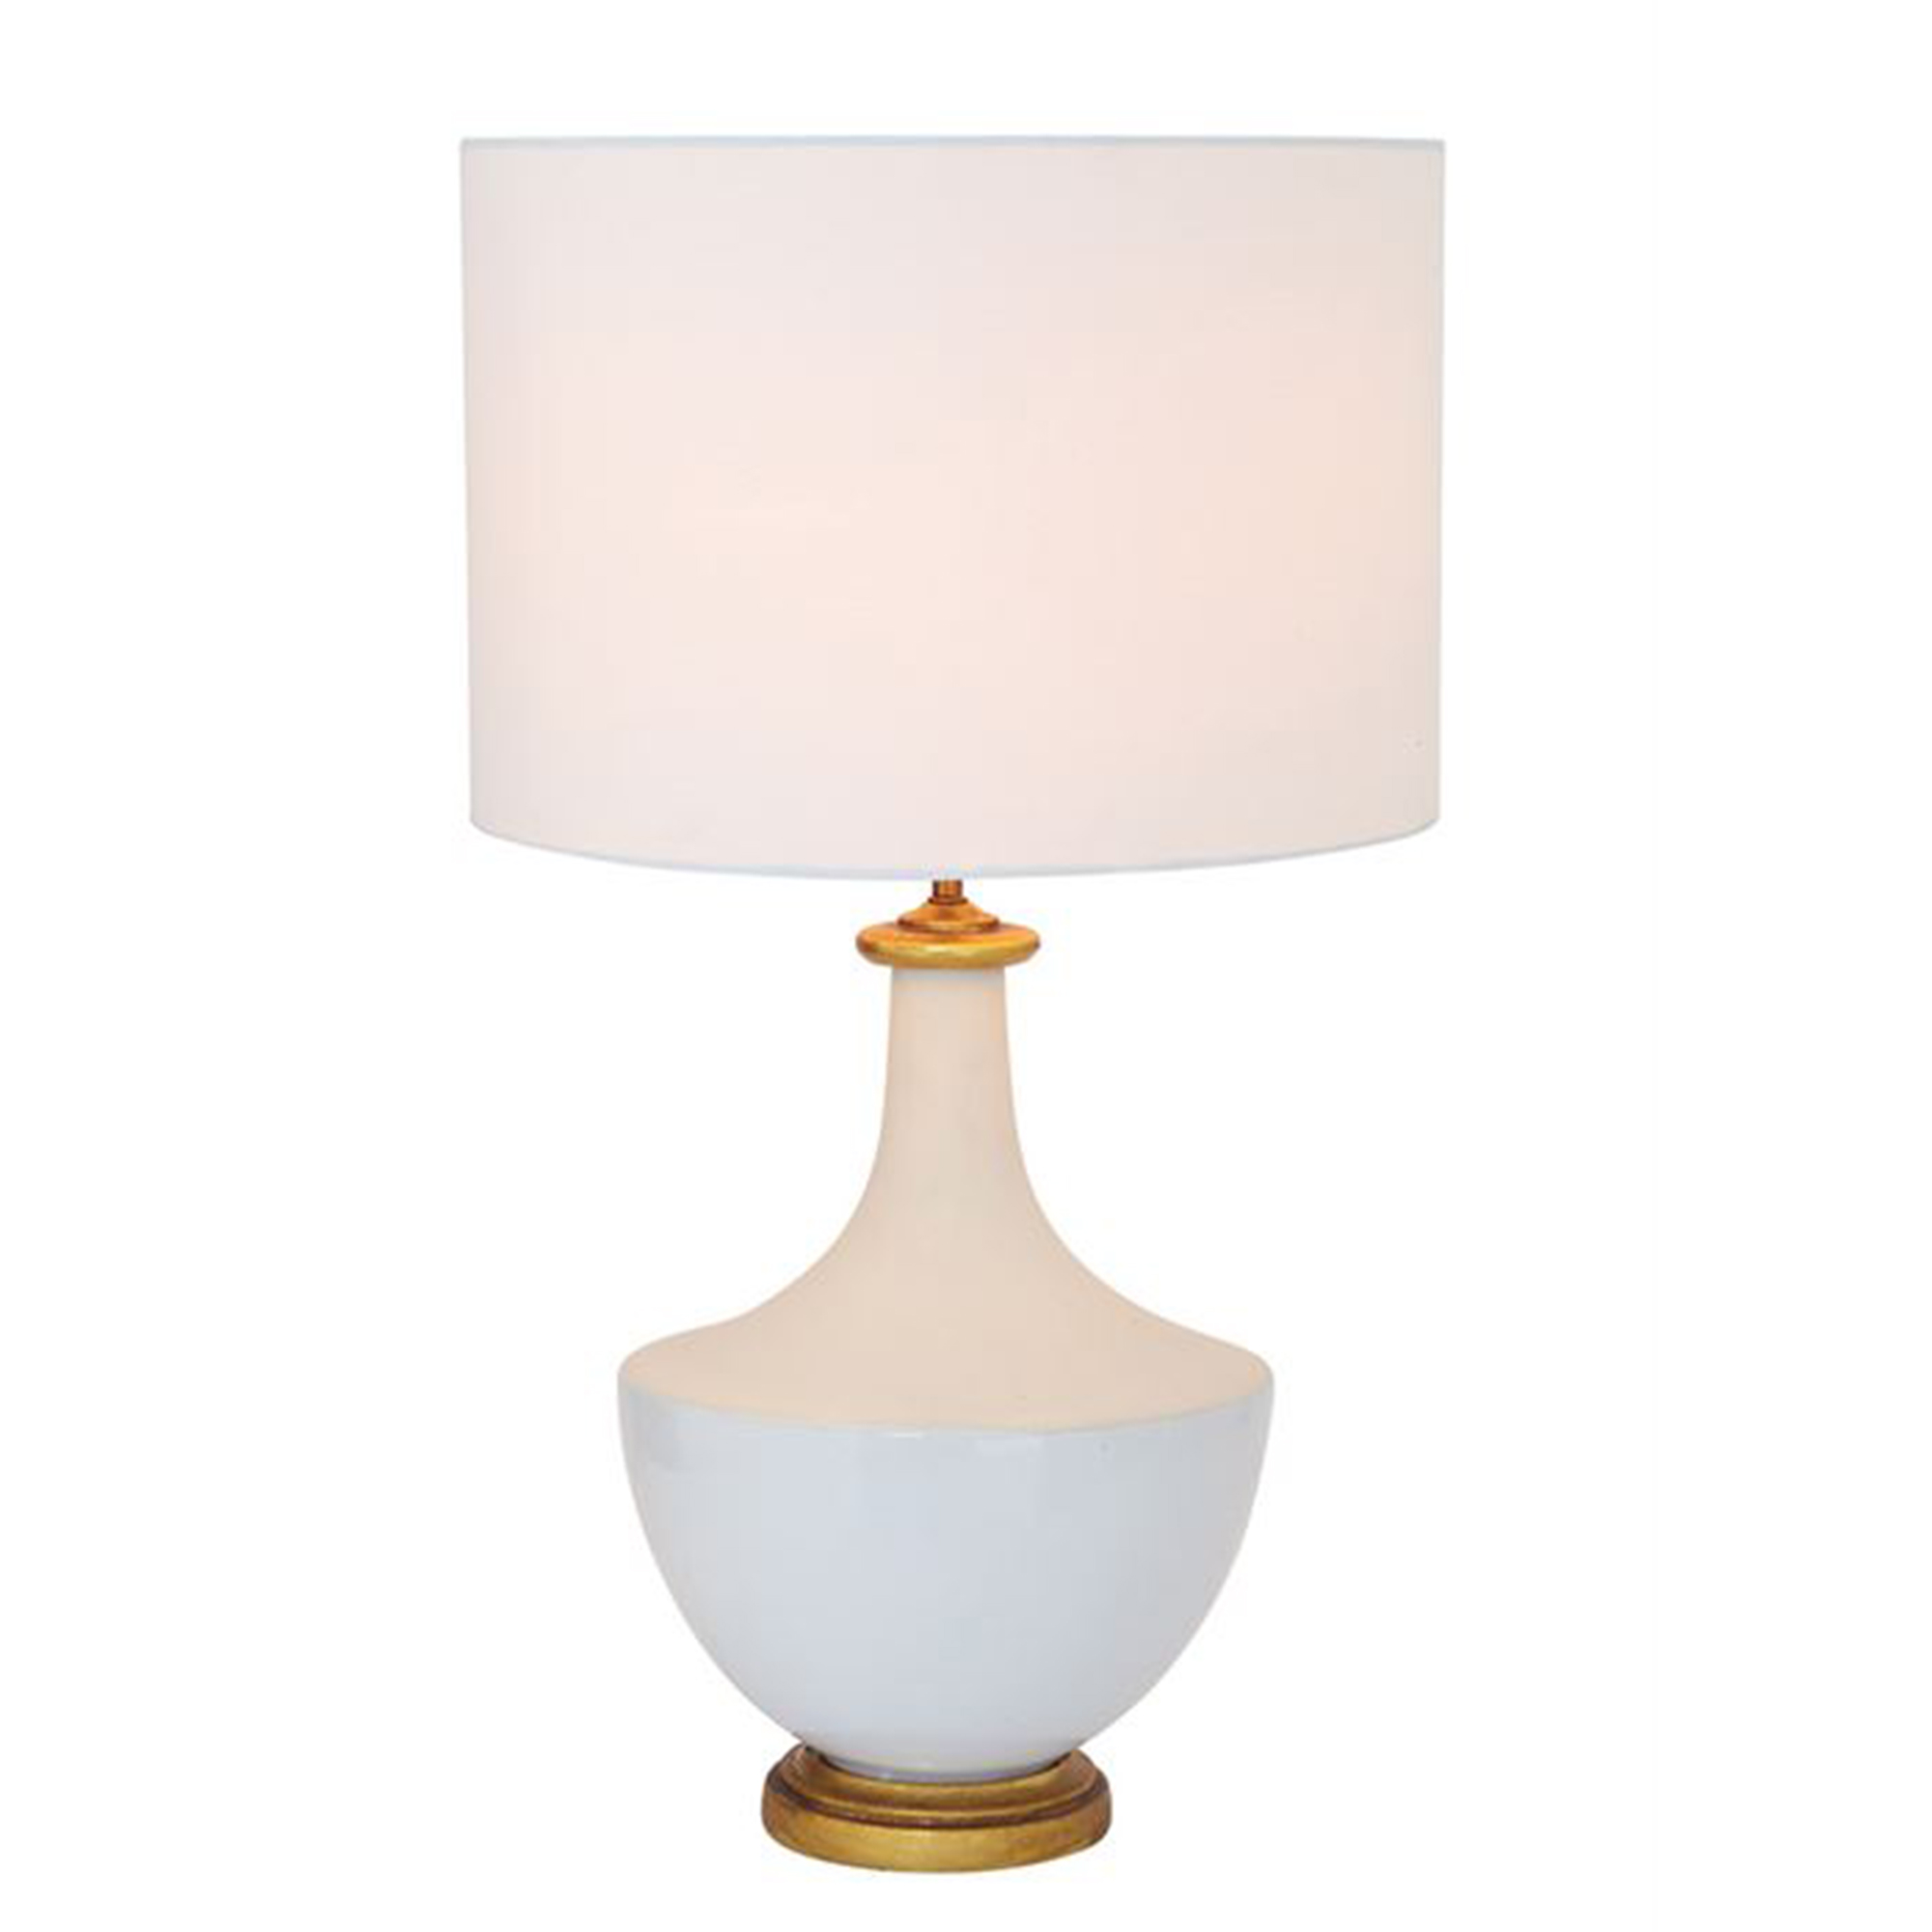 White and Gold Ceramic Table Lamp with White Shade